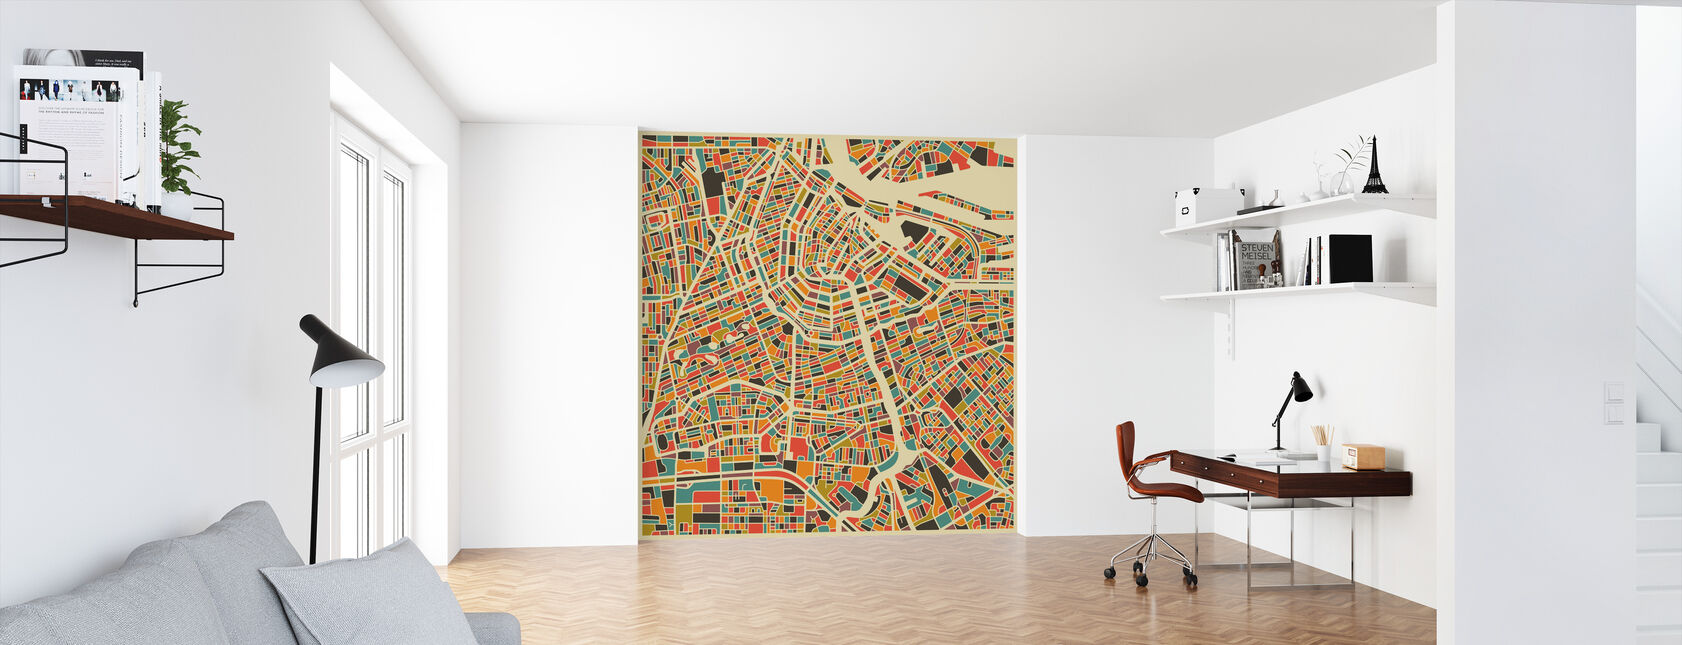 Multicolor Map - Amsterdam - Wallpaper - Office